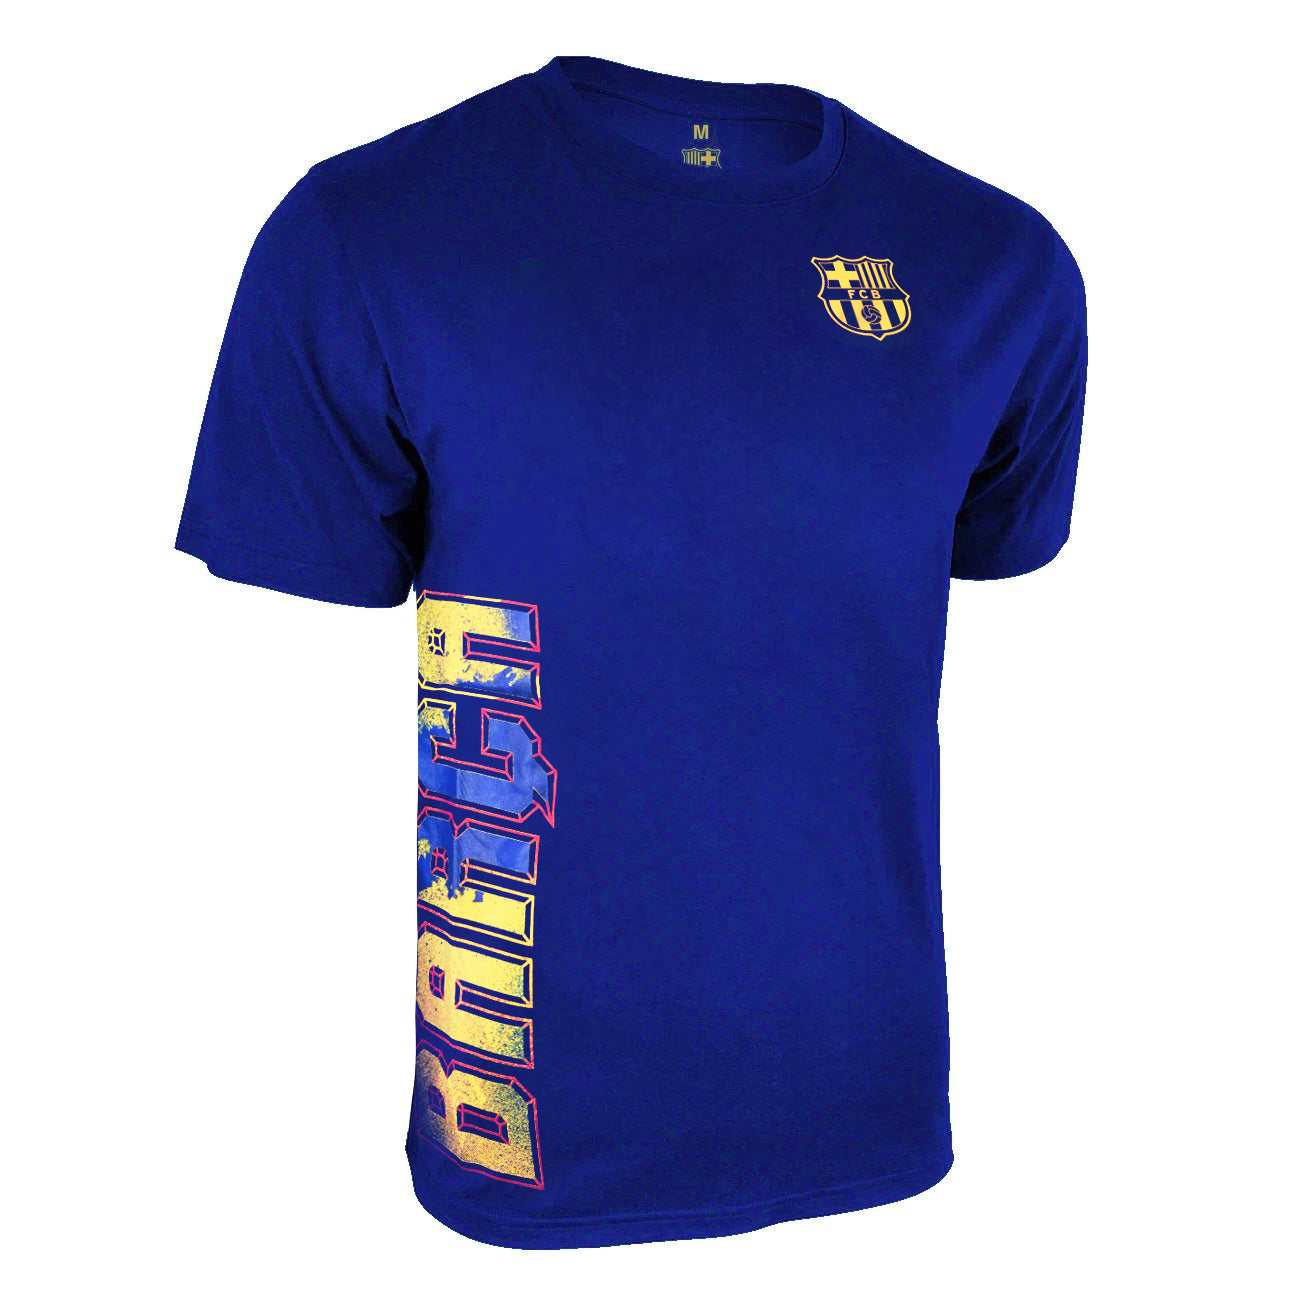 FC Barcelona T-Shirt - Royal Blue by Icon Sports